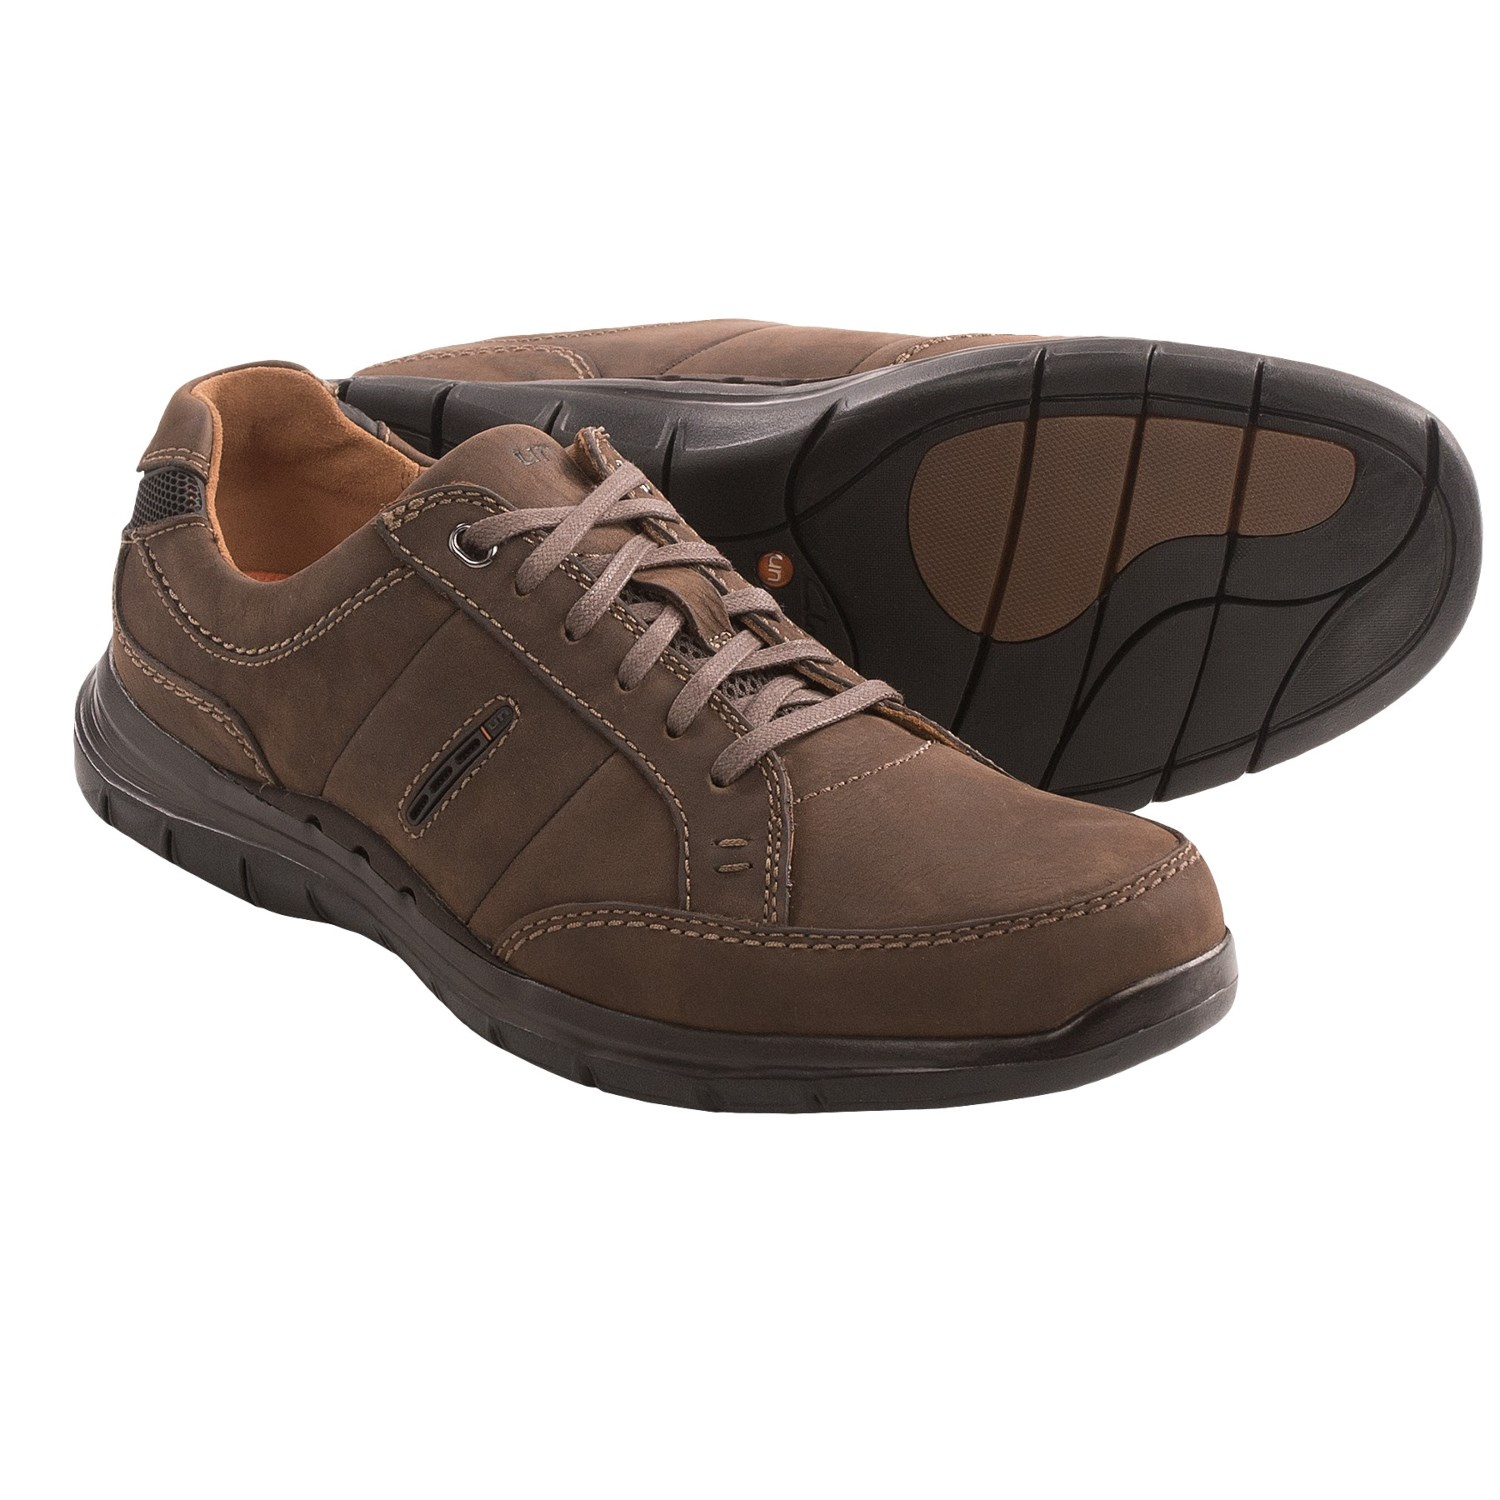 Clarks Un.Preston Shoes (For Men) in Dark Brown Nubuck